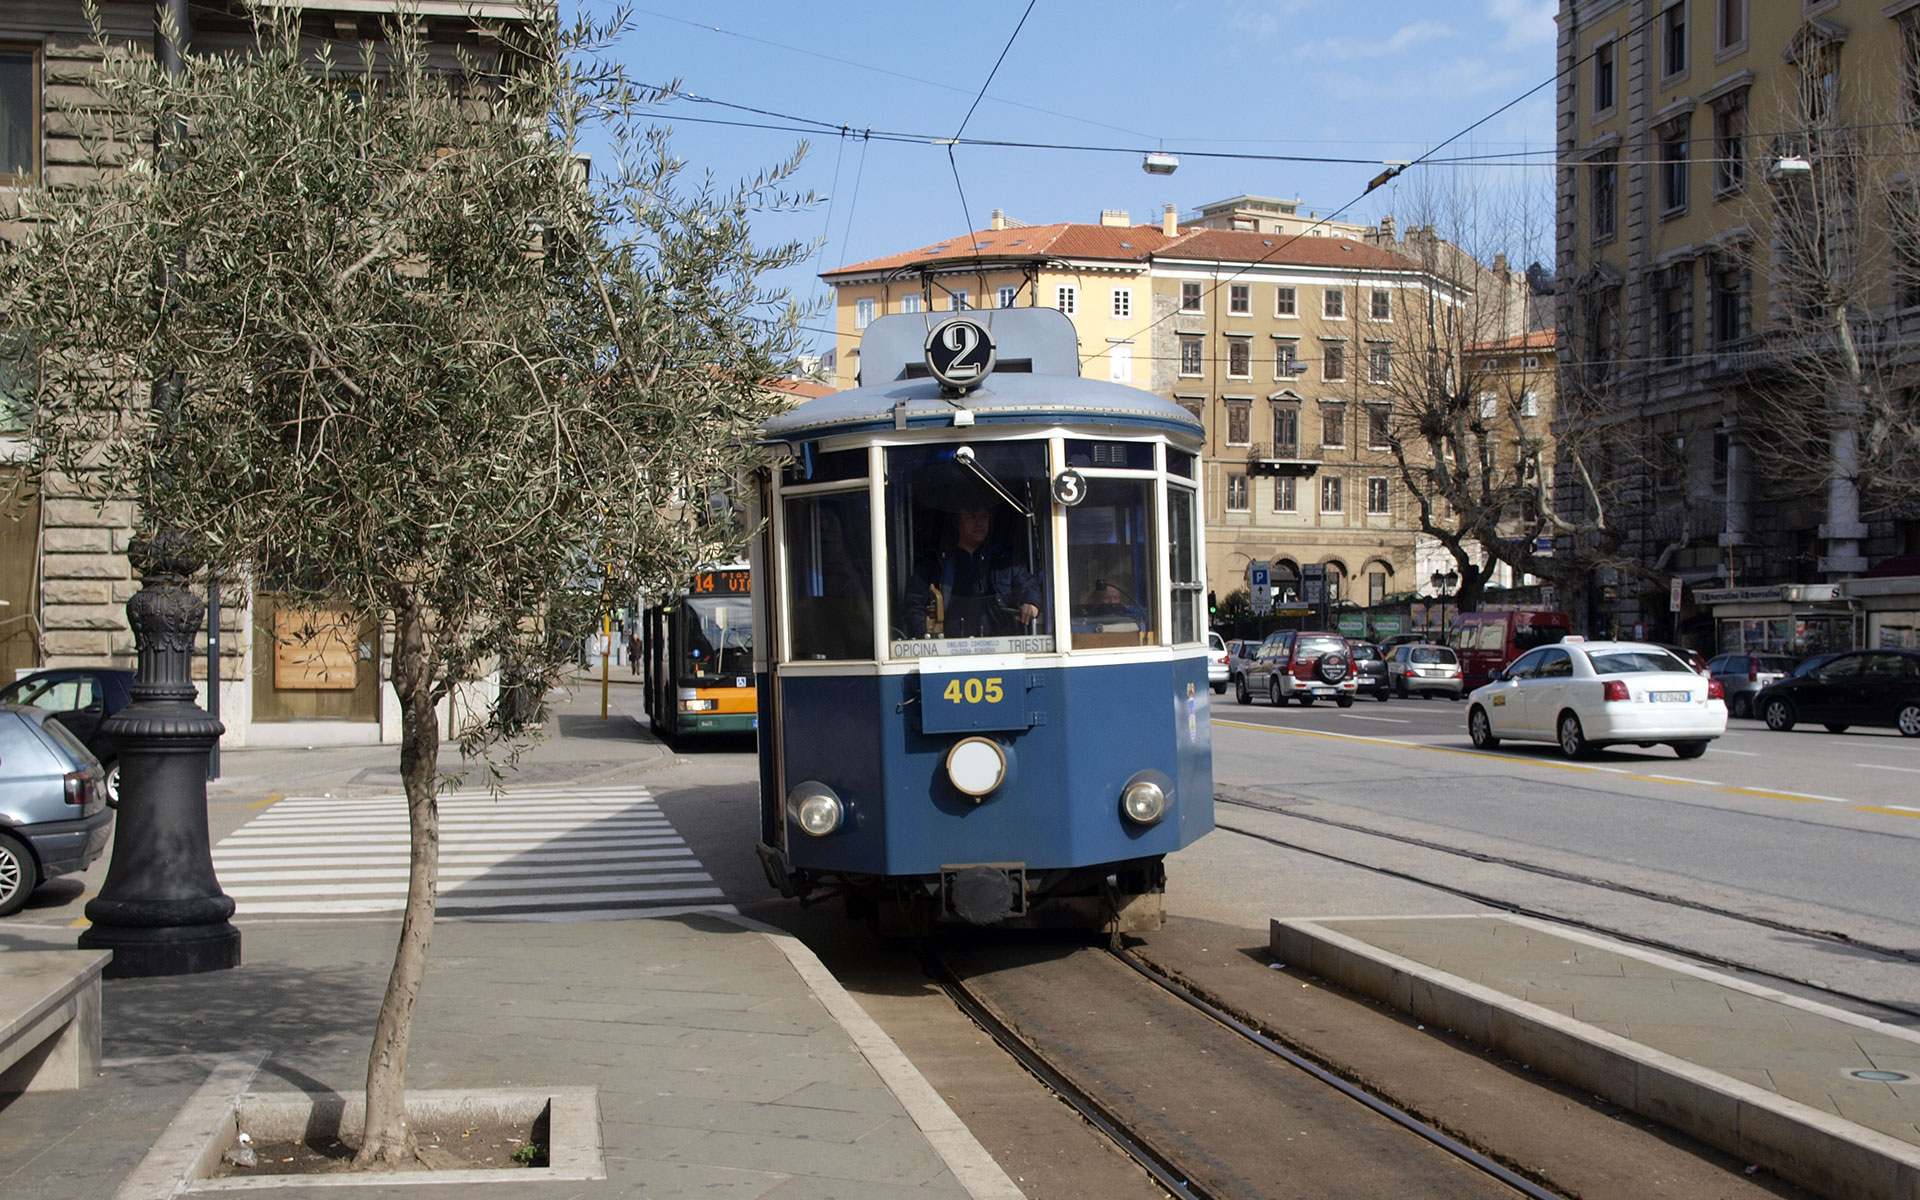 Tram line 2 connects Trieste with Villa Opicina (photo © hidden europe).